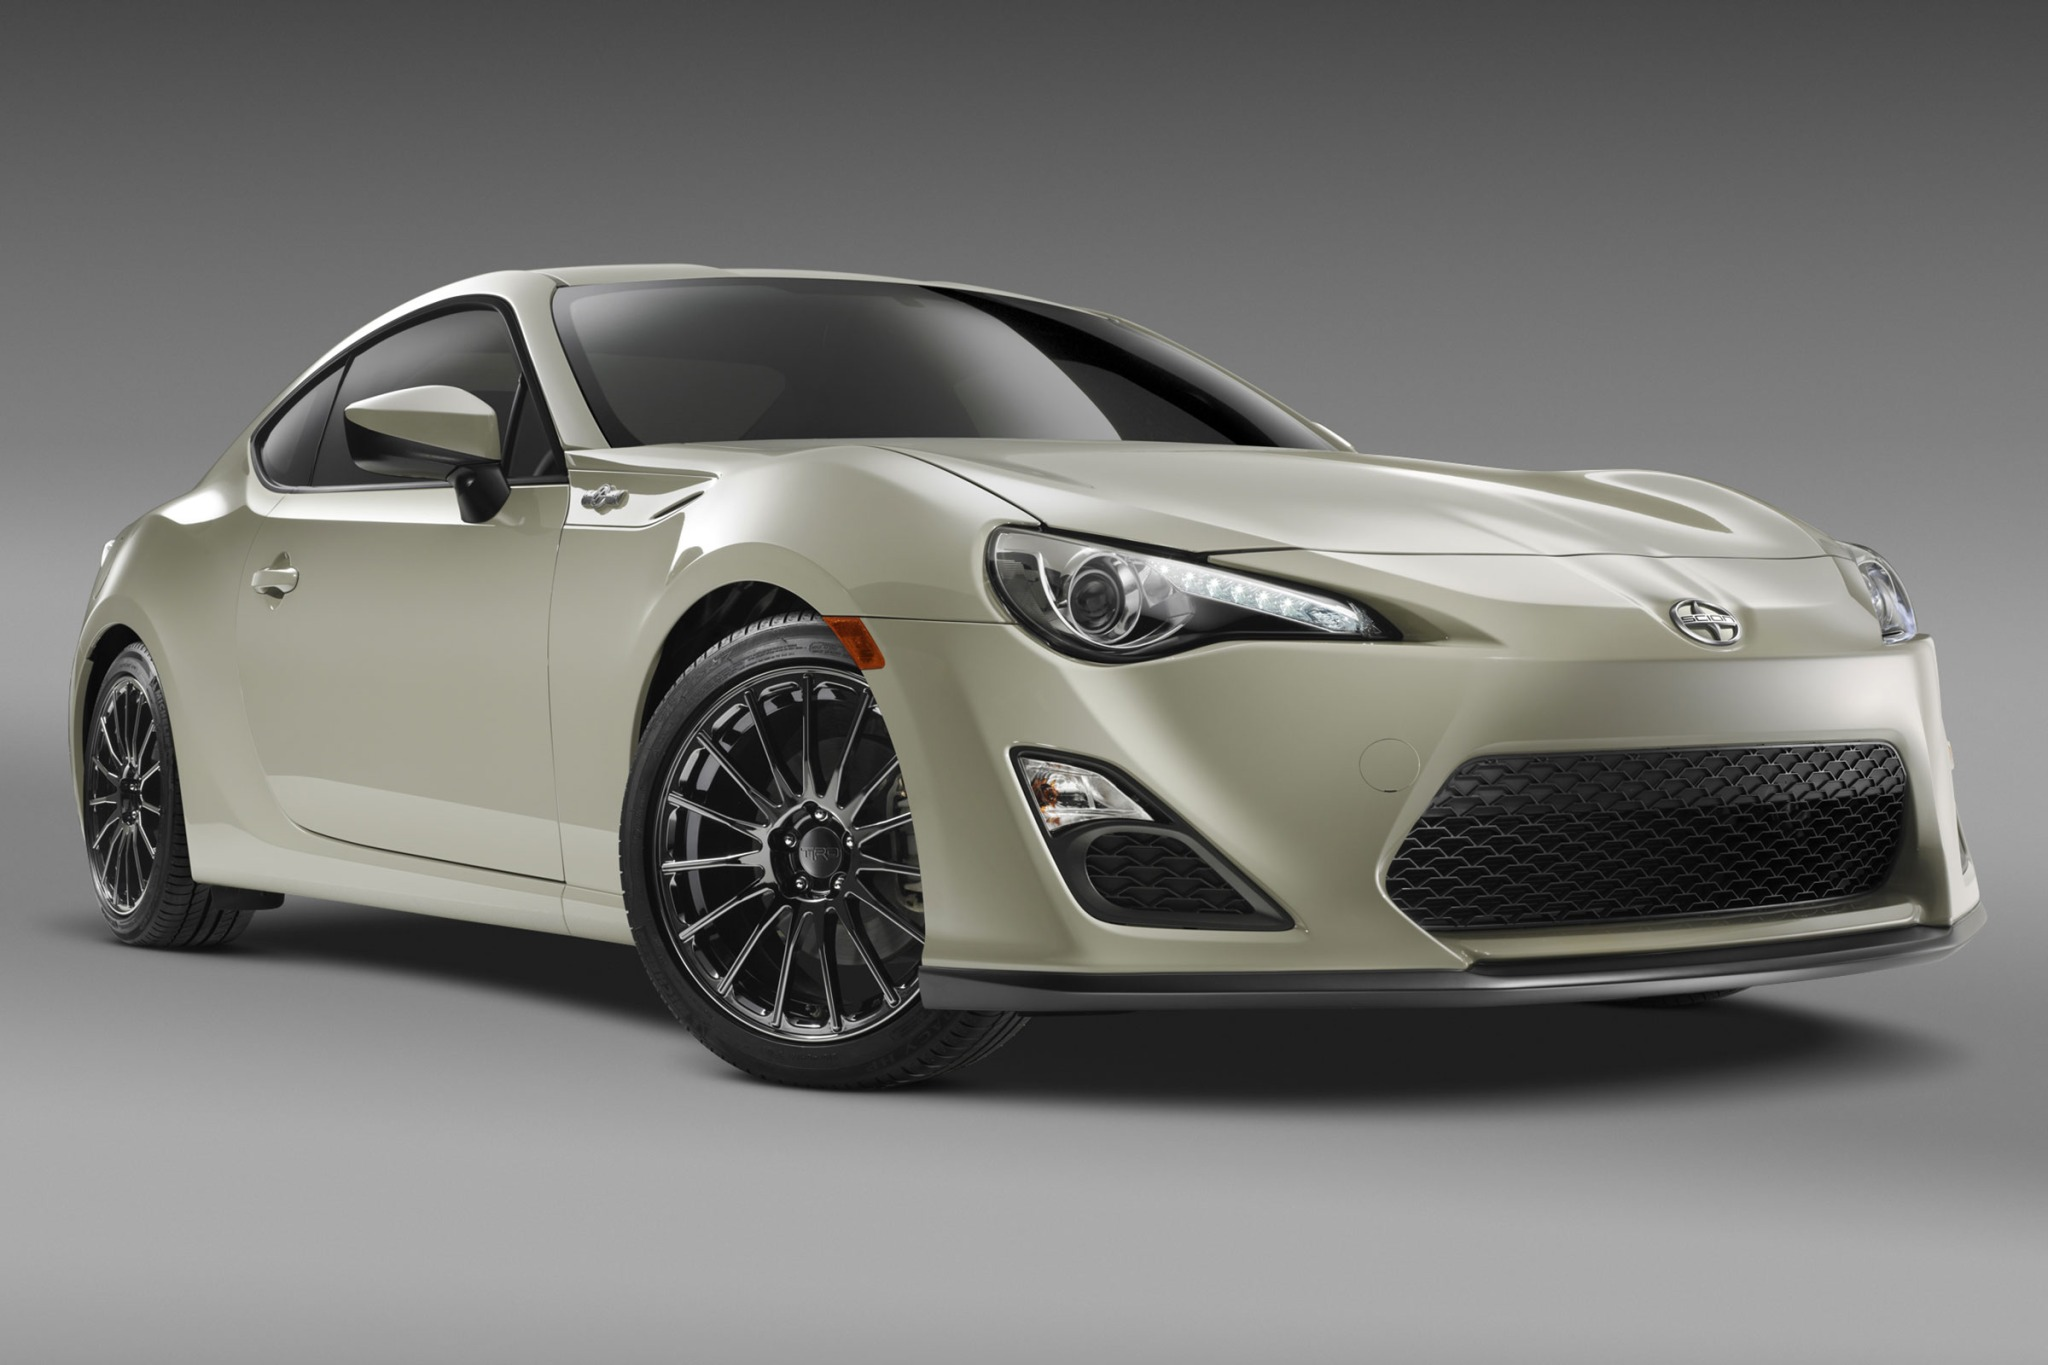 2016 scion fr s coupe release series 20 fq oem 1 2048